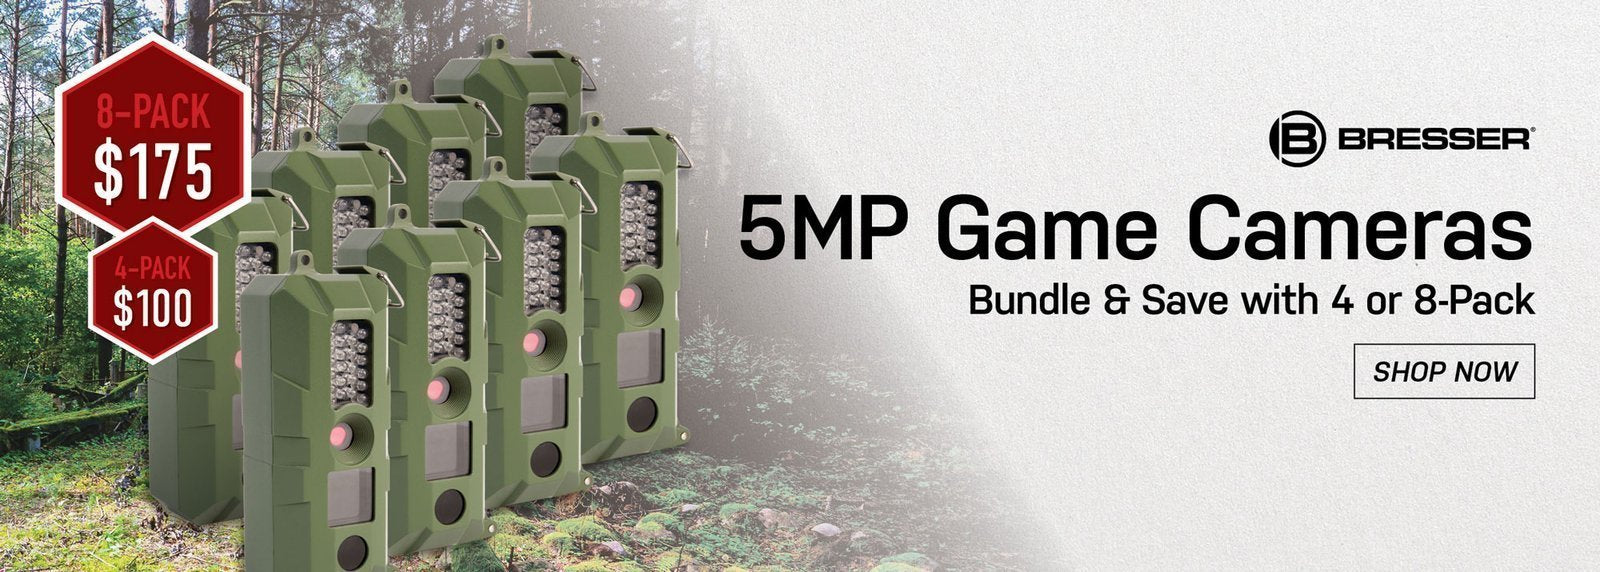 Bresser 5MP Game Cameras - Bundle & Save with 4 or 8-pack